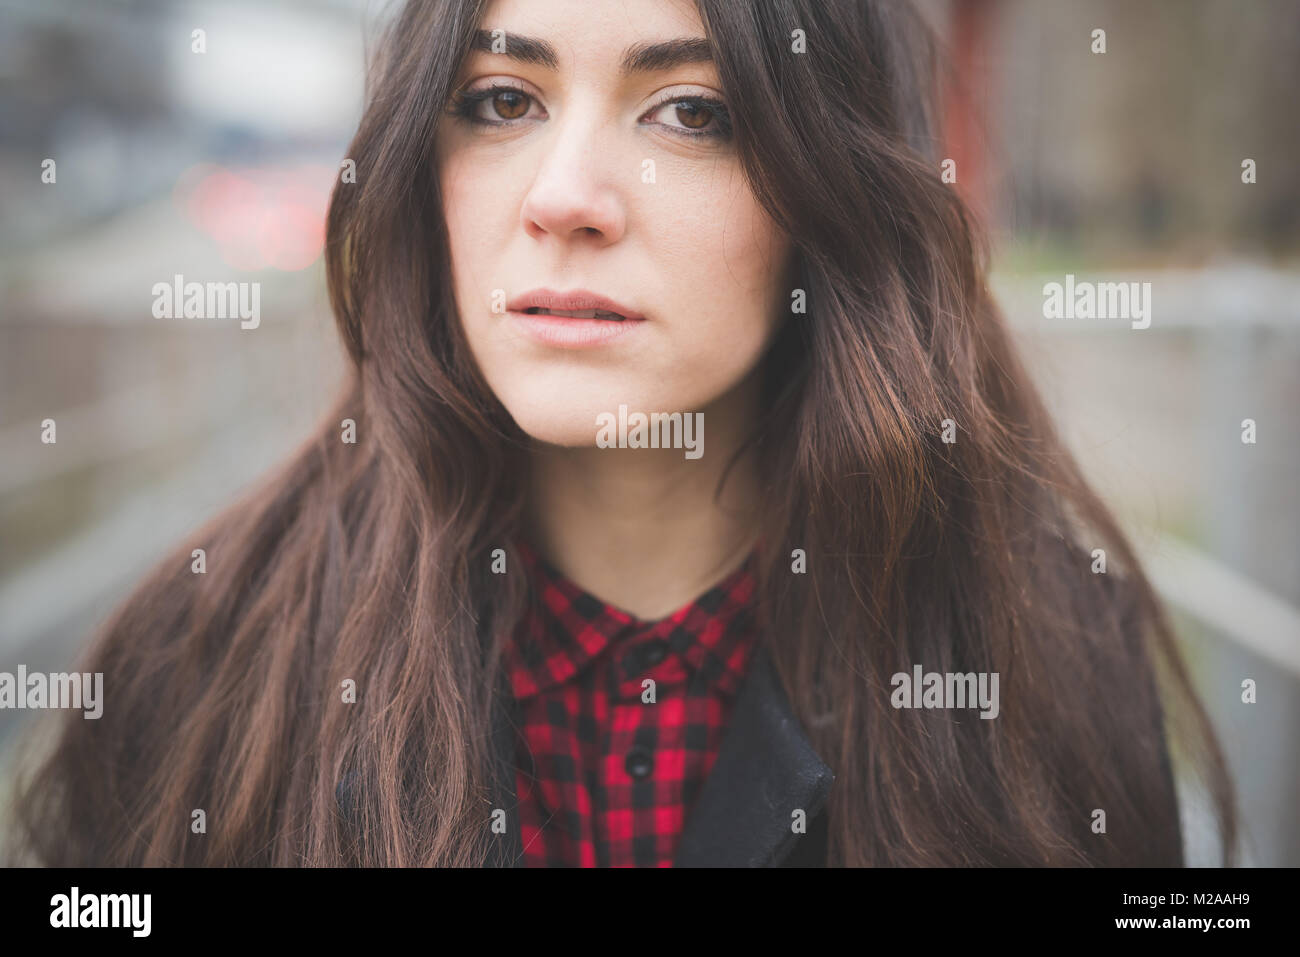 portrait young woman outdoor looking camera melancholic - assertiveness, carefree, freshness concept - Stock Image